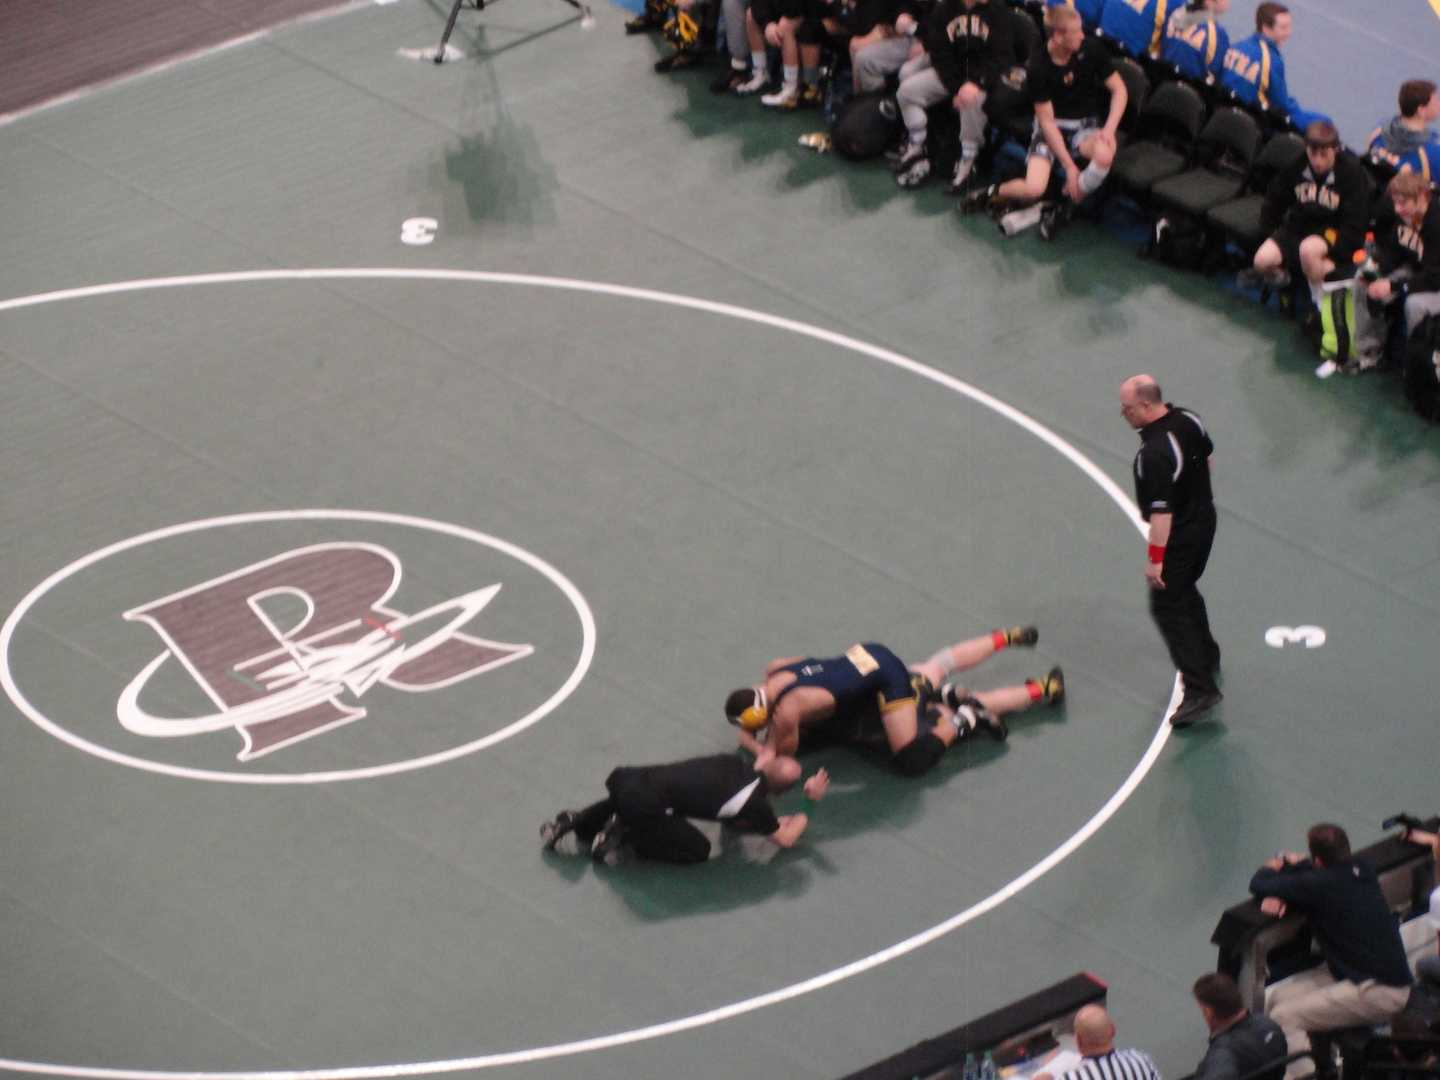 Jared Florell pins his opponent.